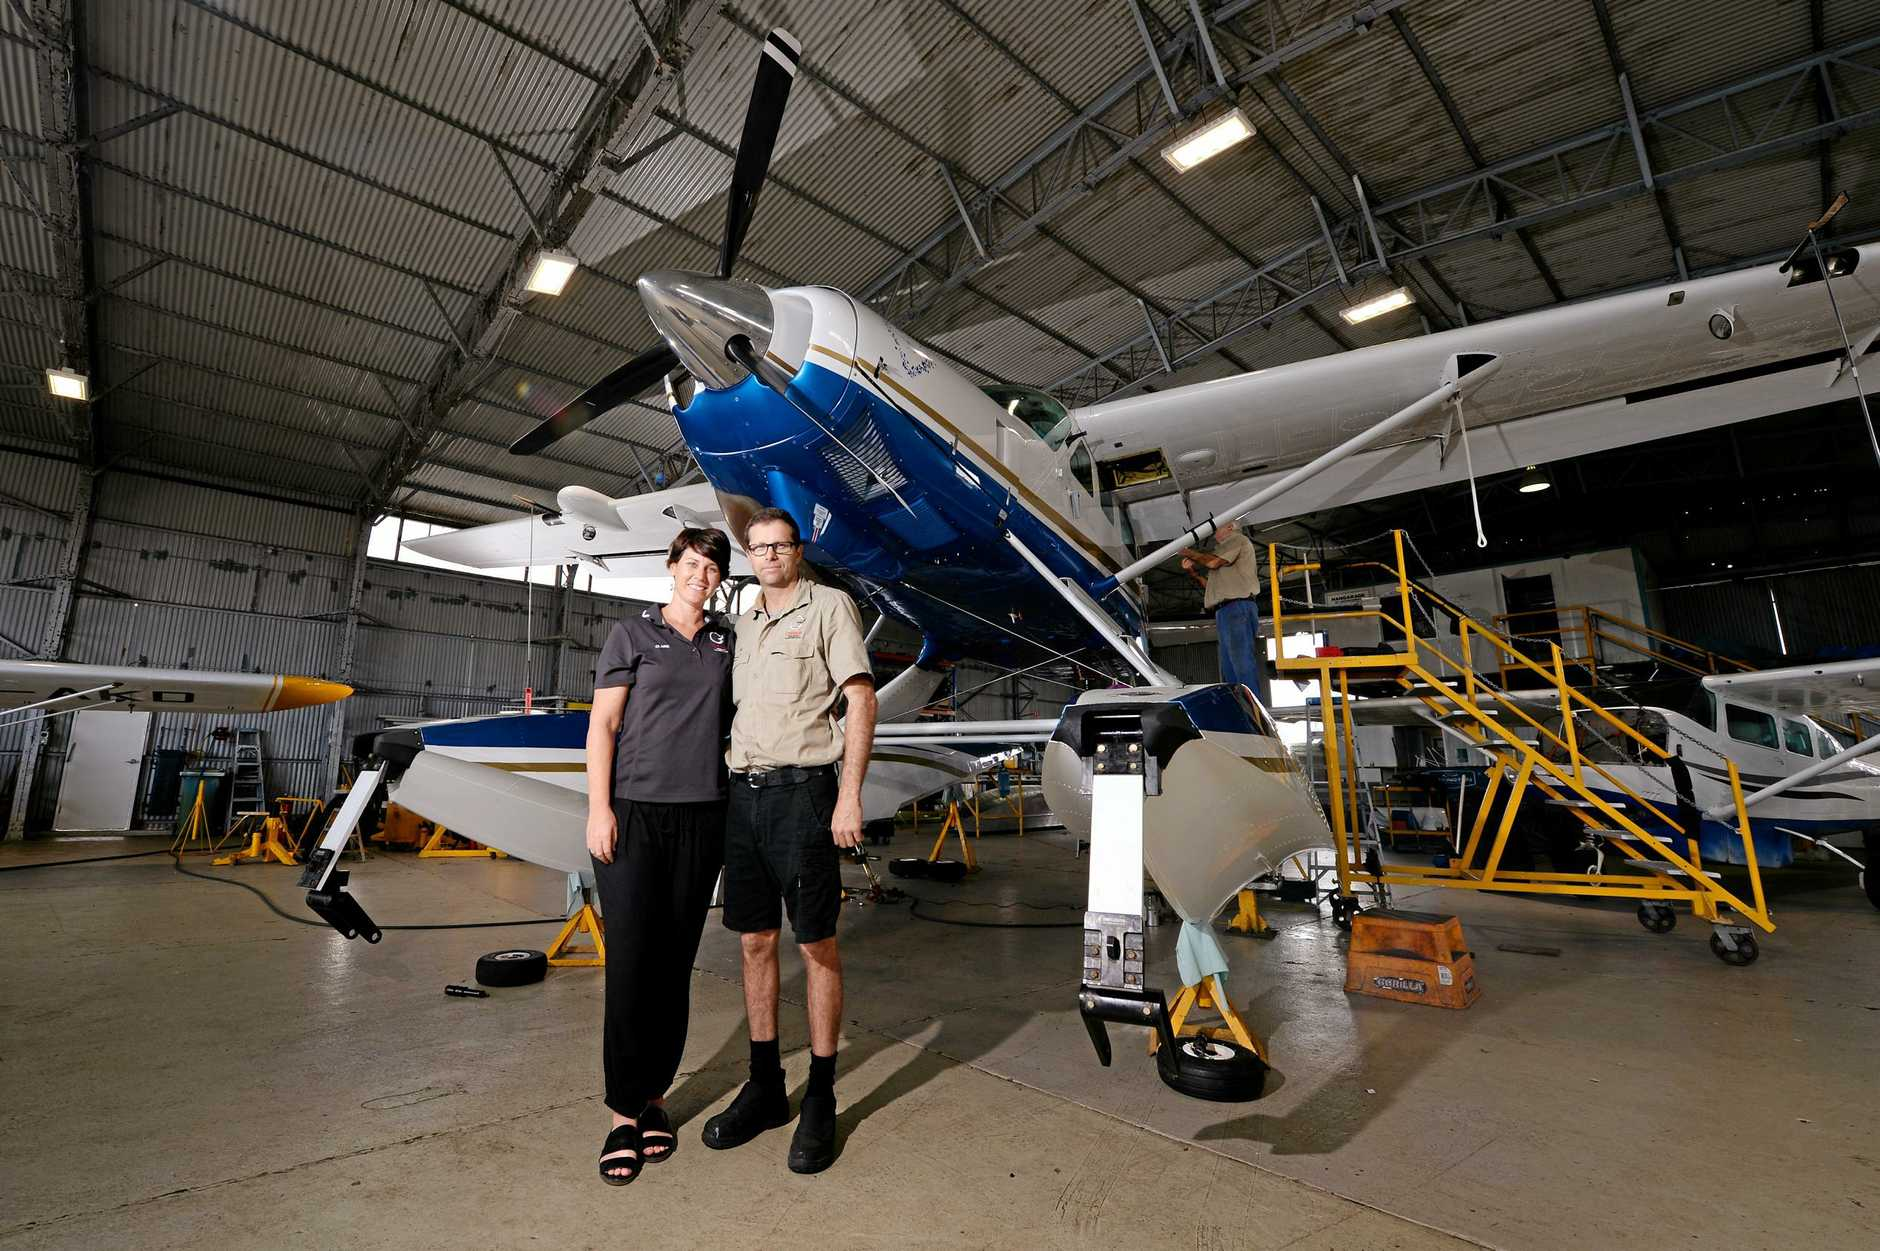 Chrisair aircraft maintenance at Mackay airport. Claire and Dan Christensen